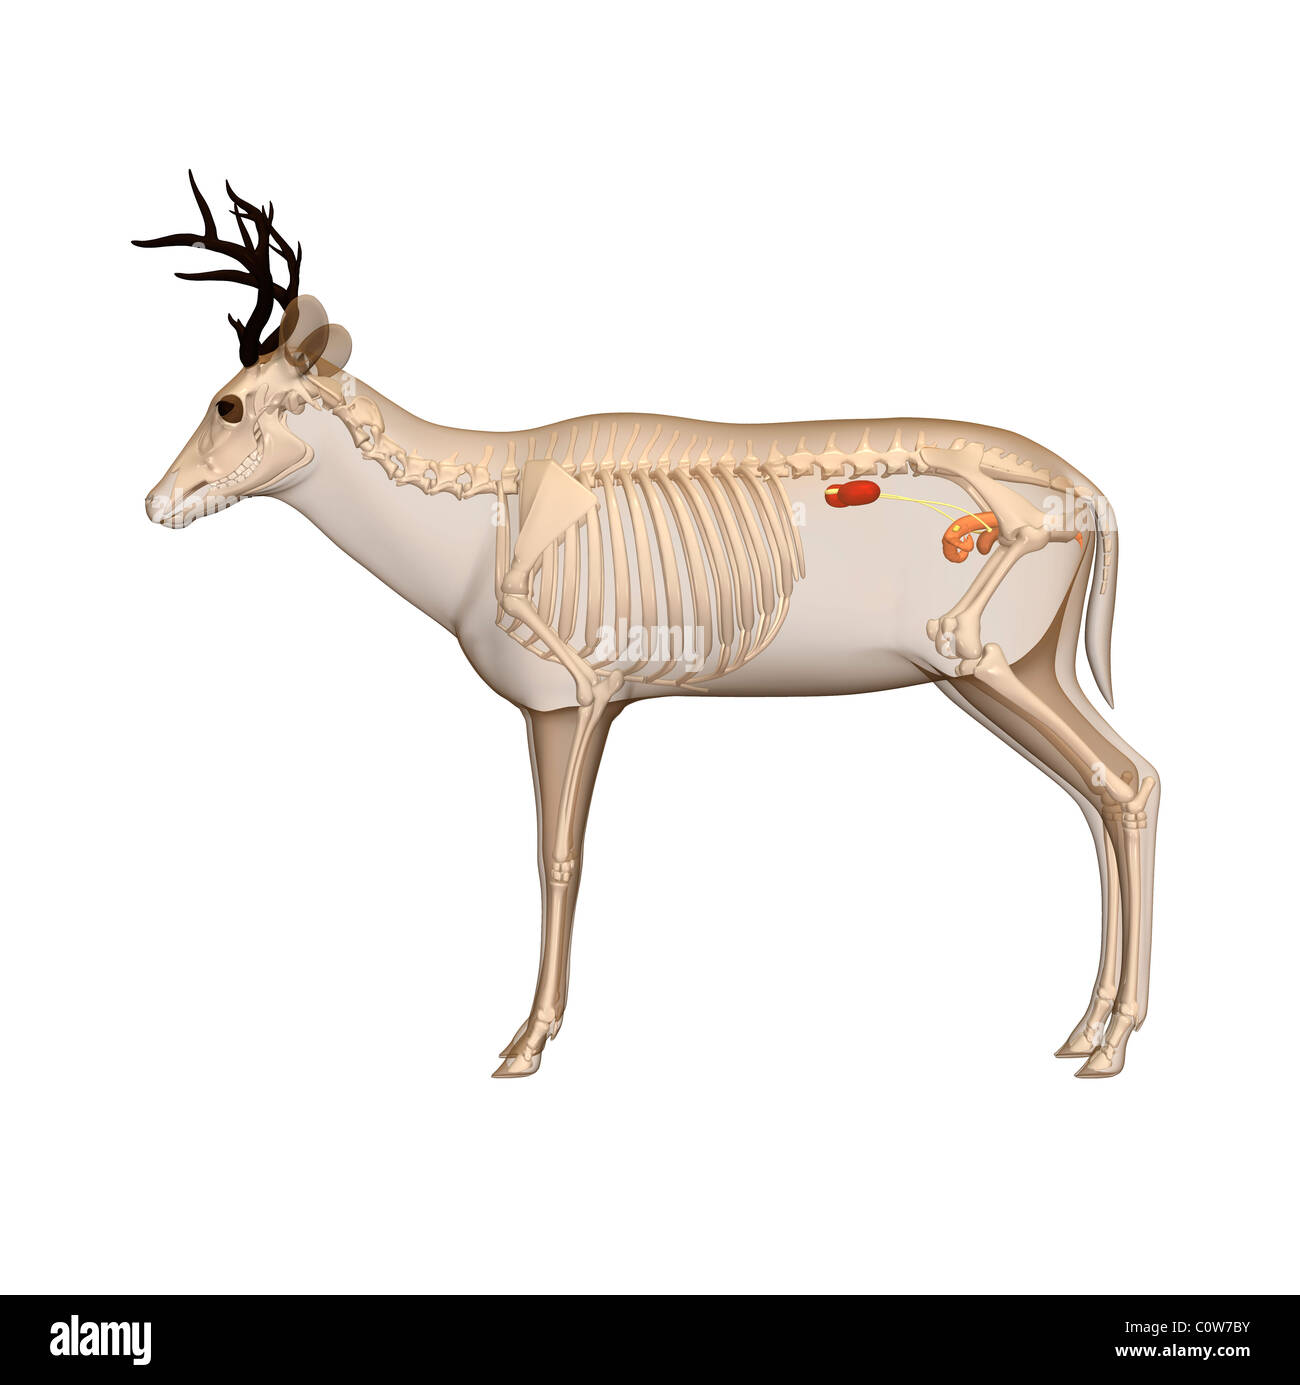 deer anatomy urinary transparent body Stock Photo: 34975359 - Alamy